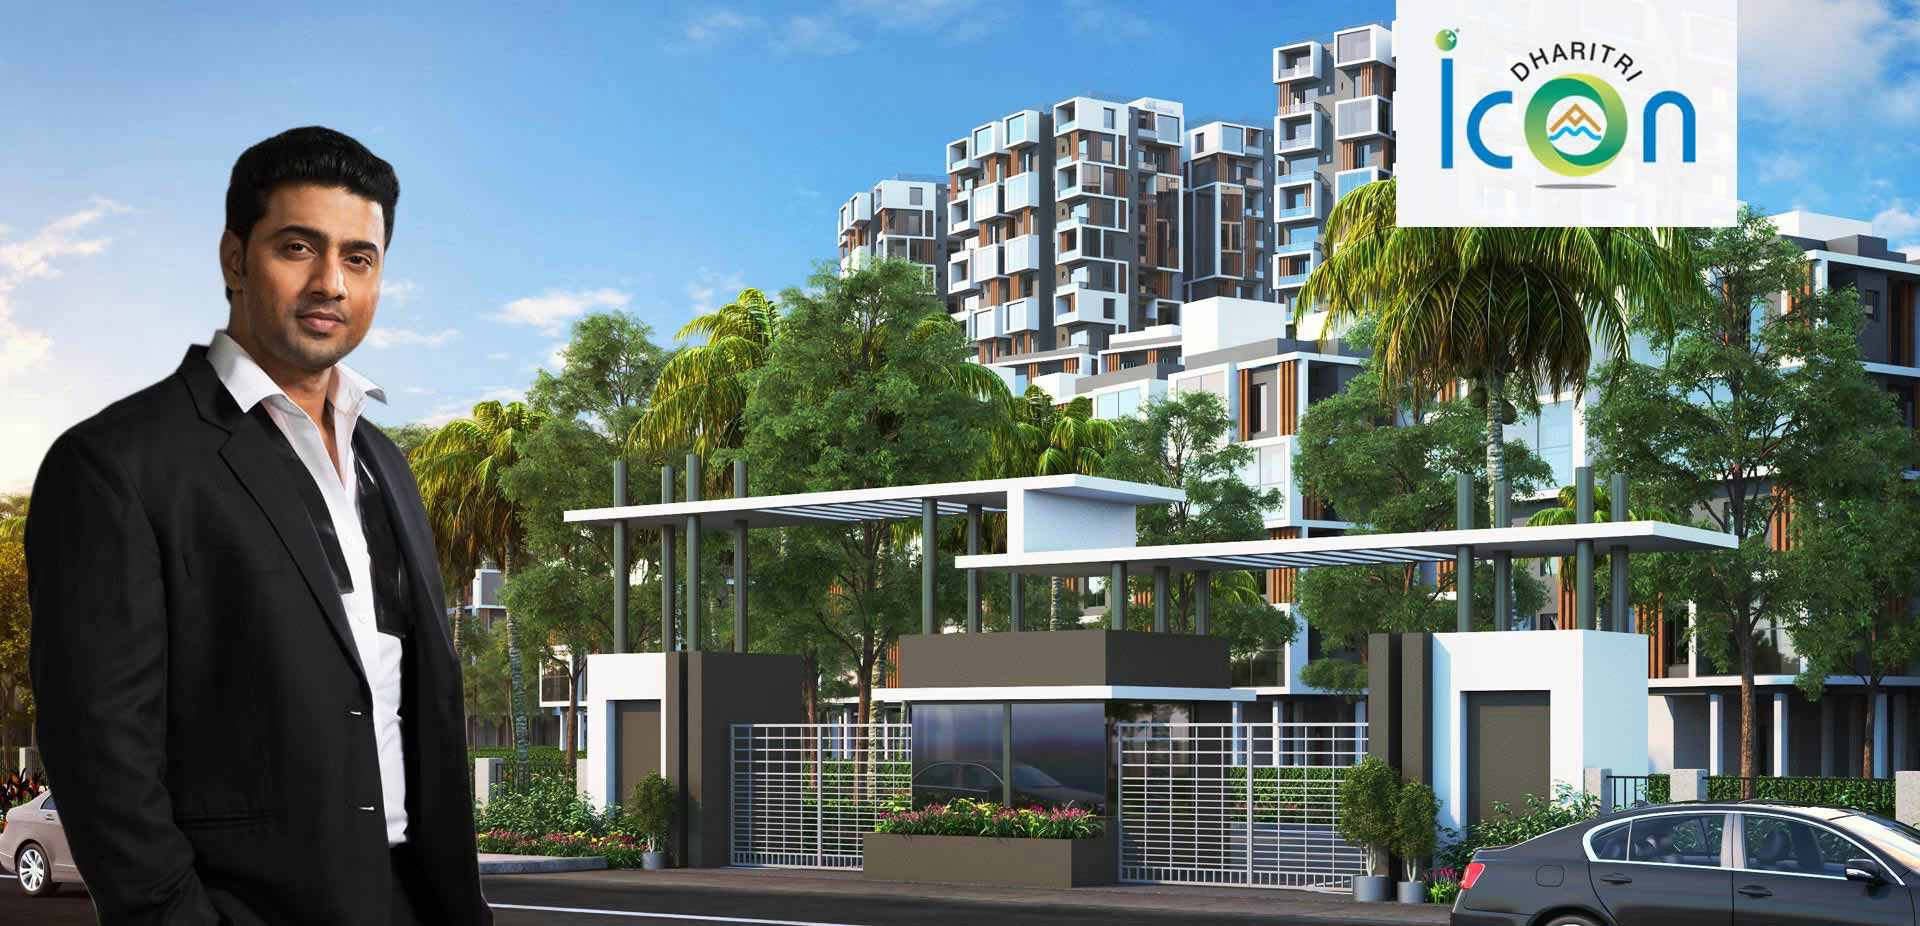 Dharitri Icon is a residential real estate project  located in Rajarhat, Kolkata.